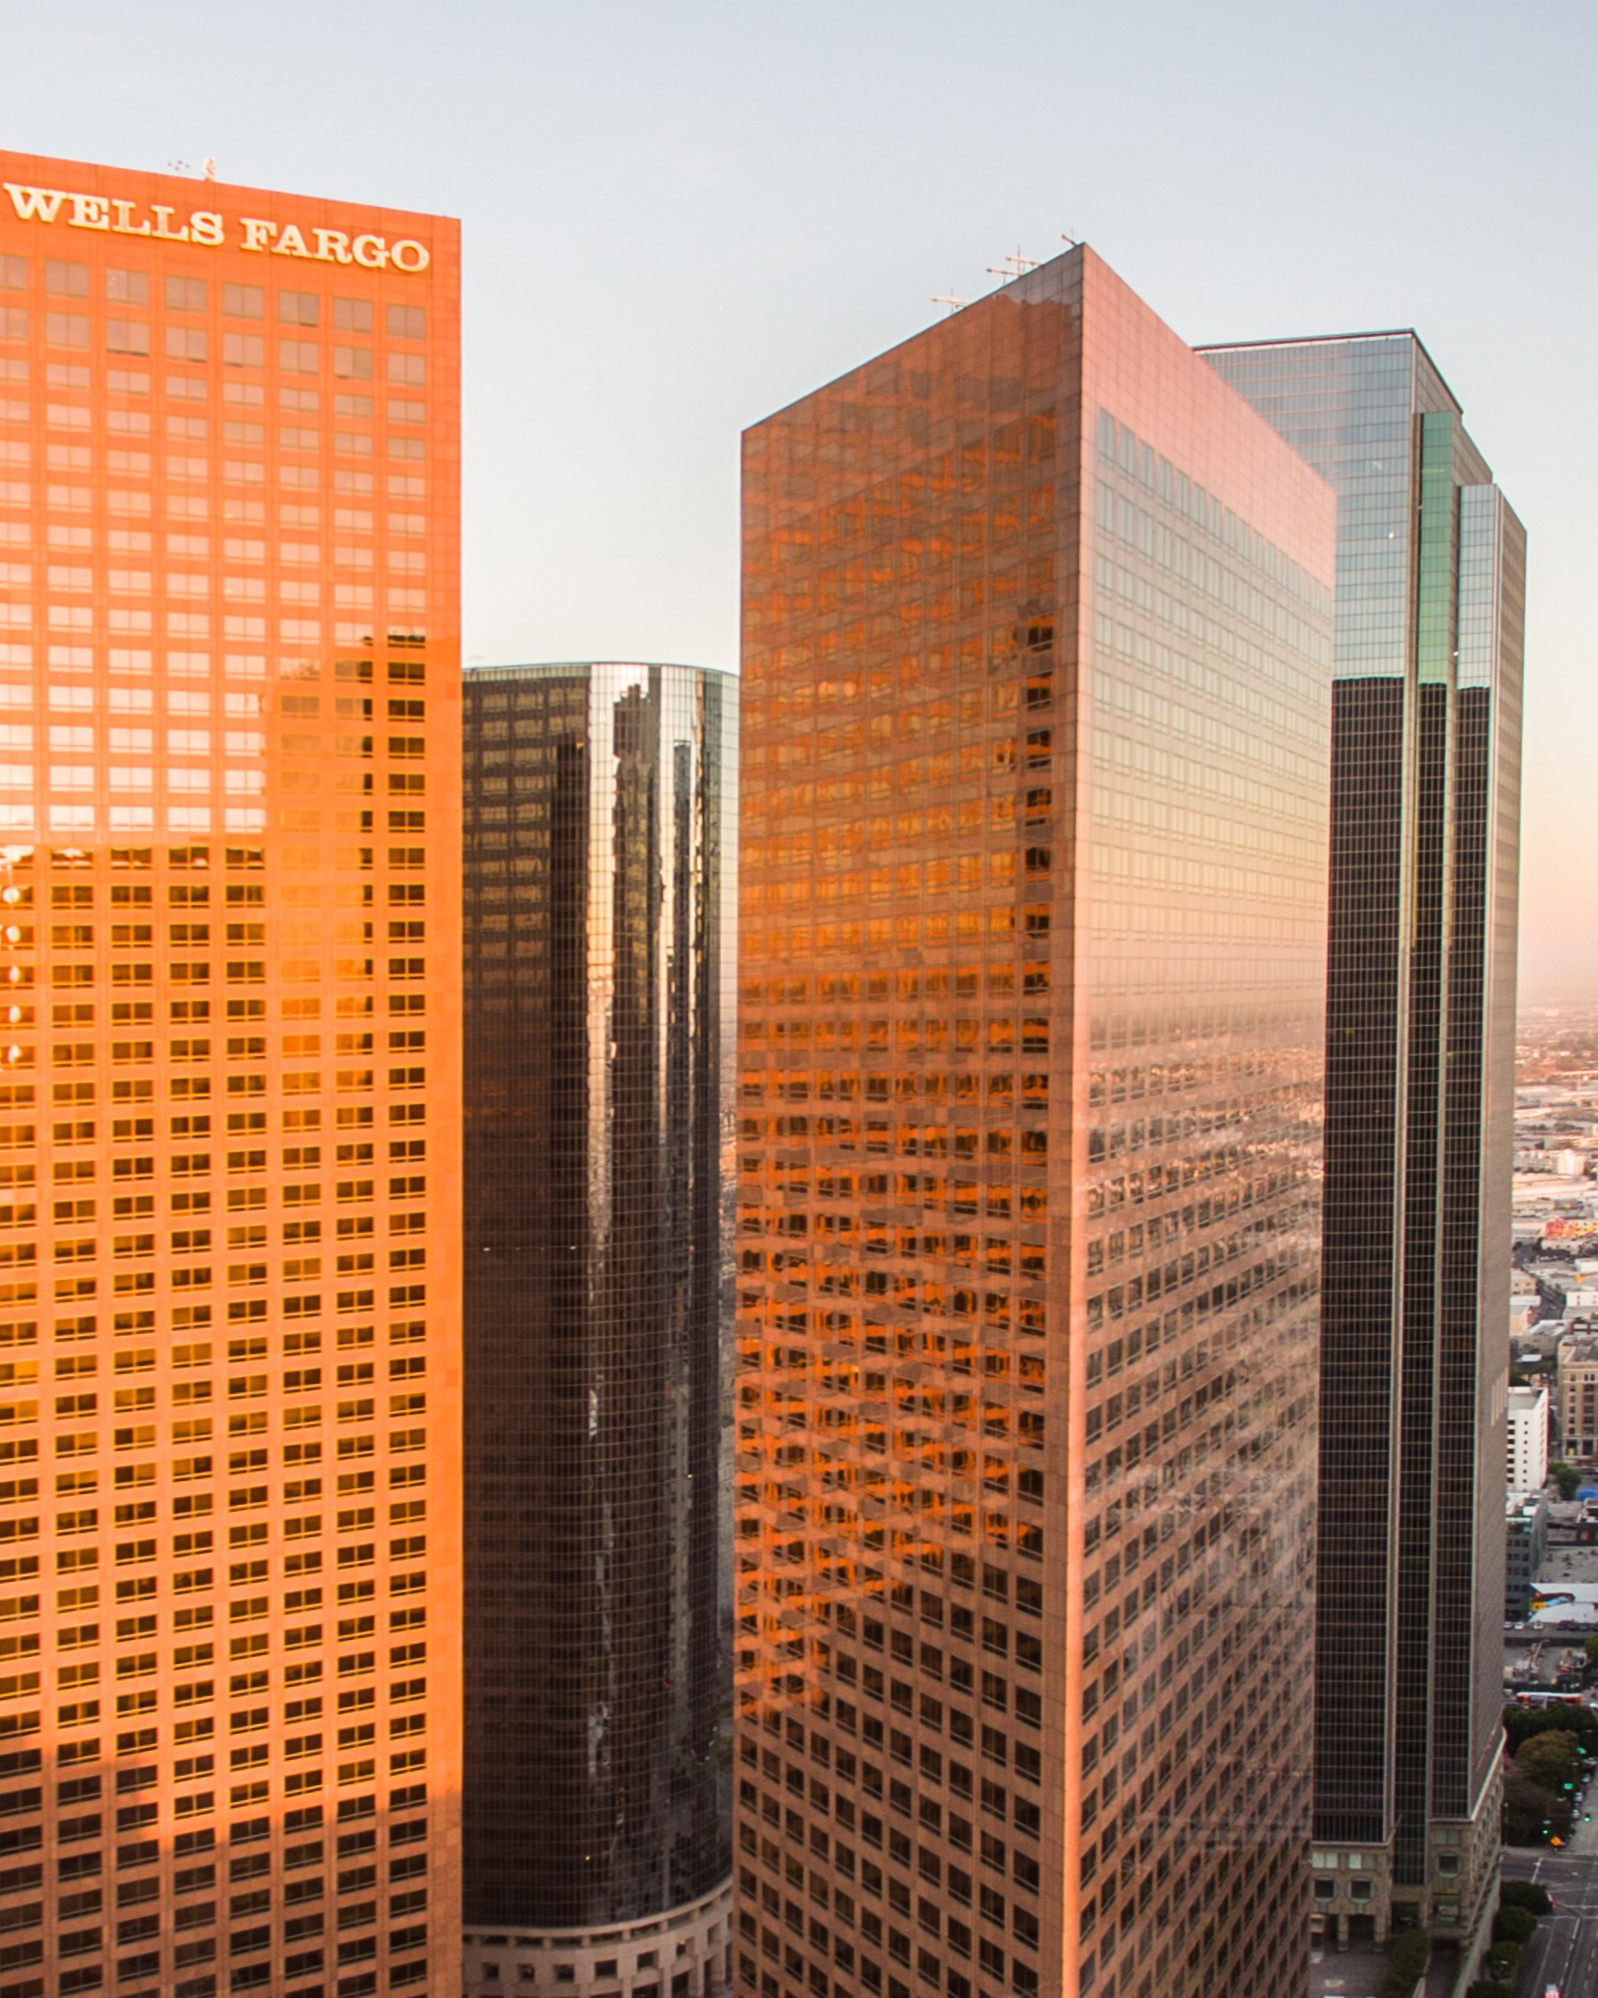 Image of several skyscrapers. Two red buildings are in the center, while the sun reflects off one behind them.